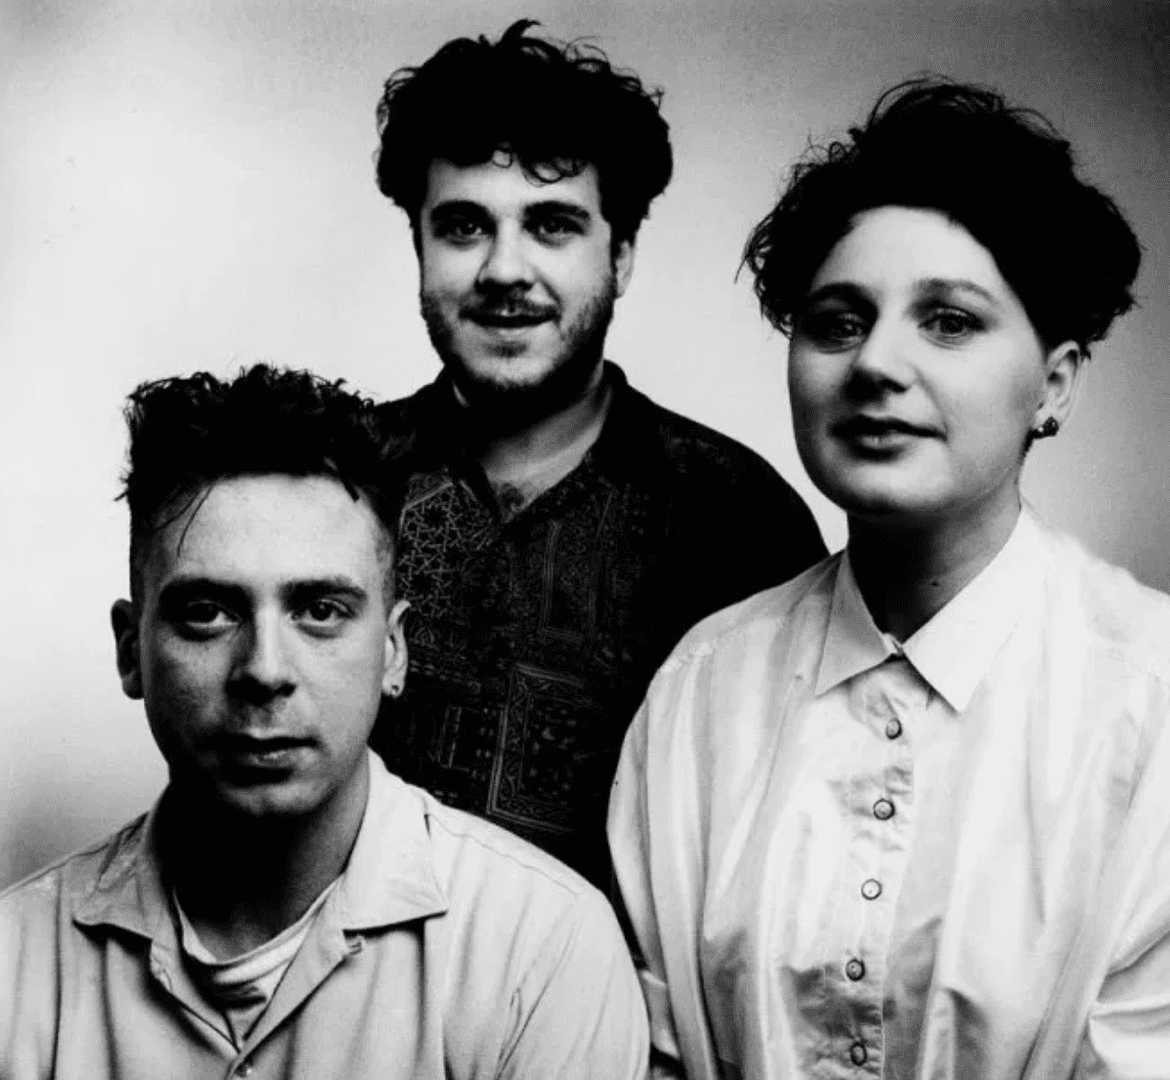 Children of the Cocteau Twins